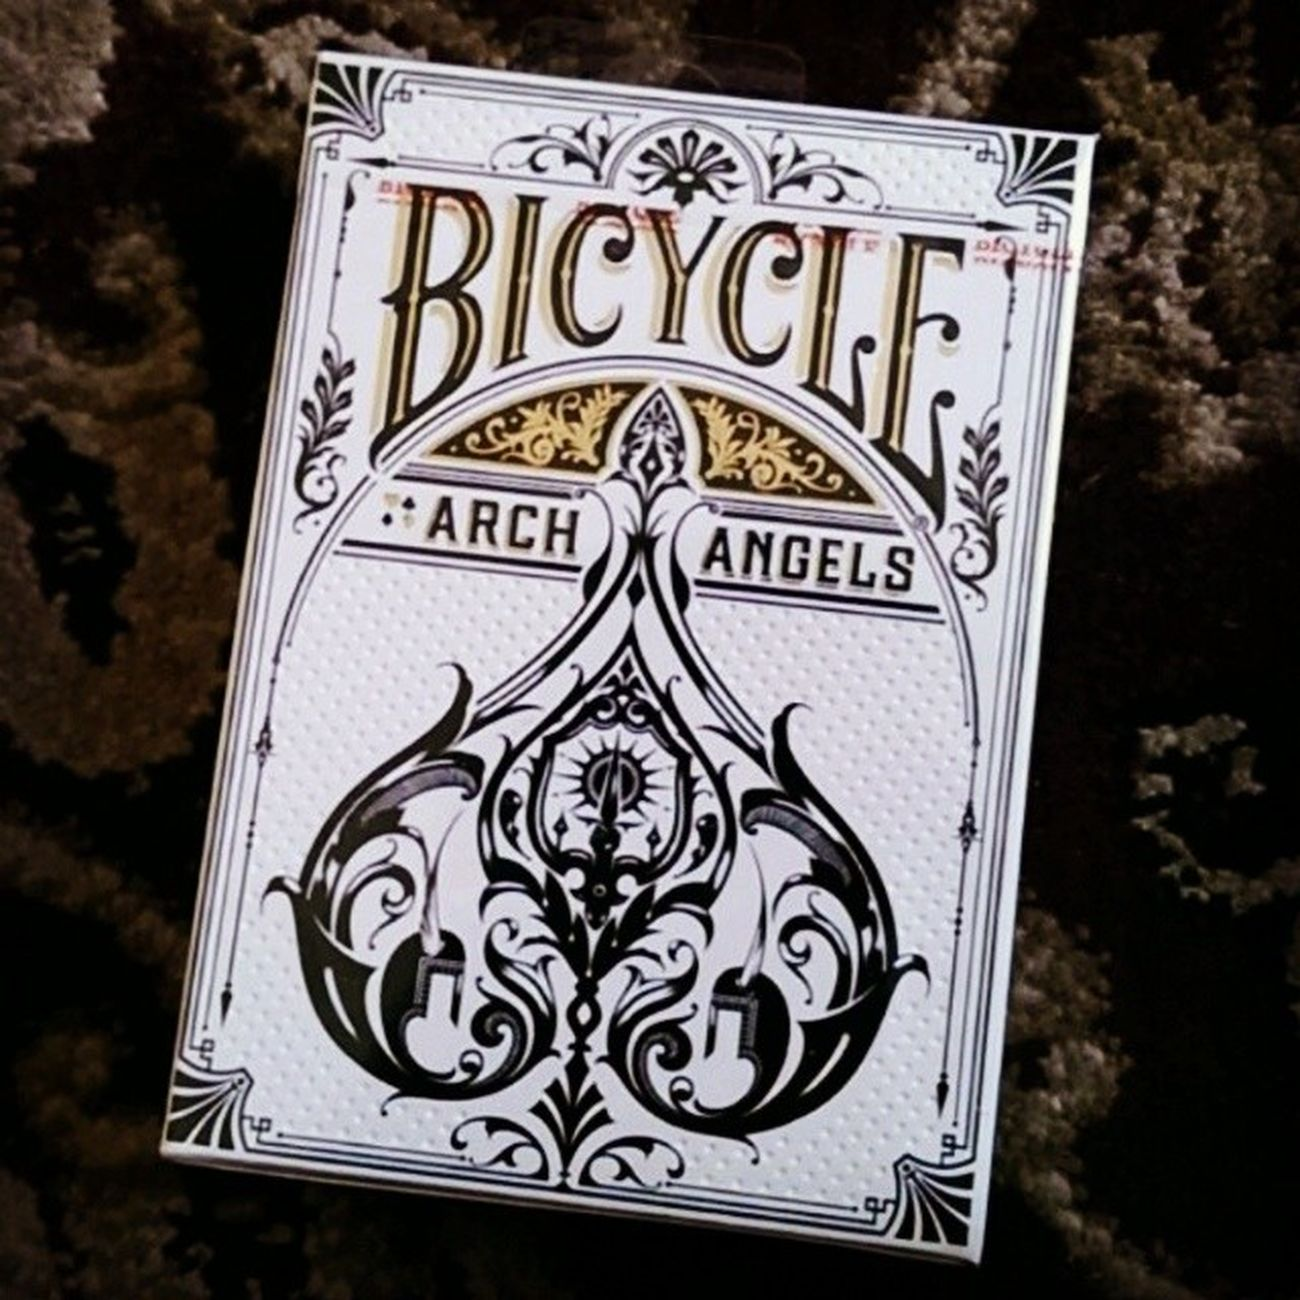 Bicycle Deck Aces Arc Angels Hot Spades Diamonds Clubs Hearts Arcangel Majestic